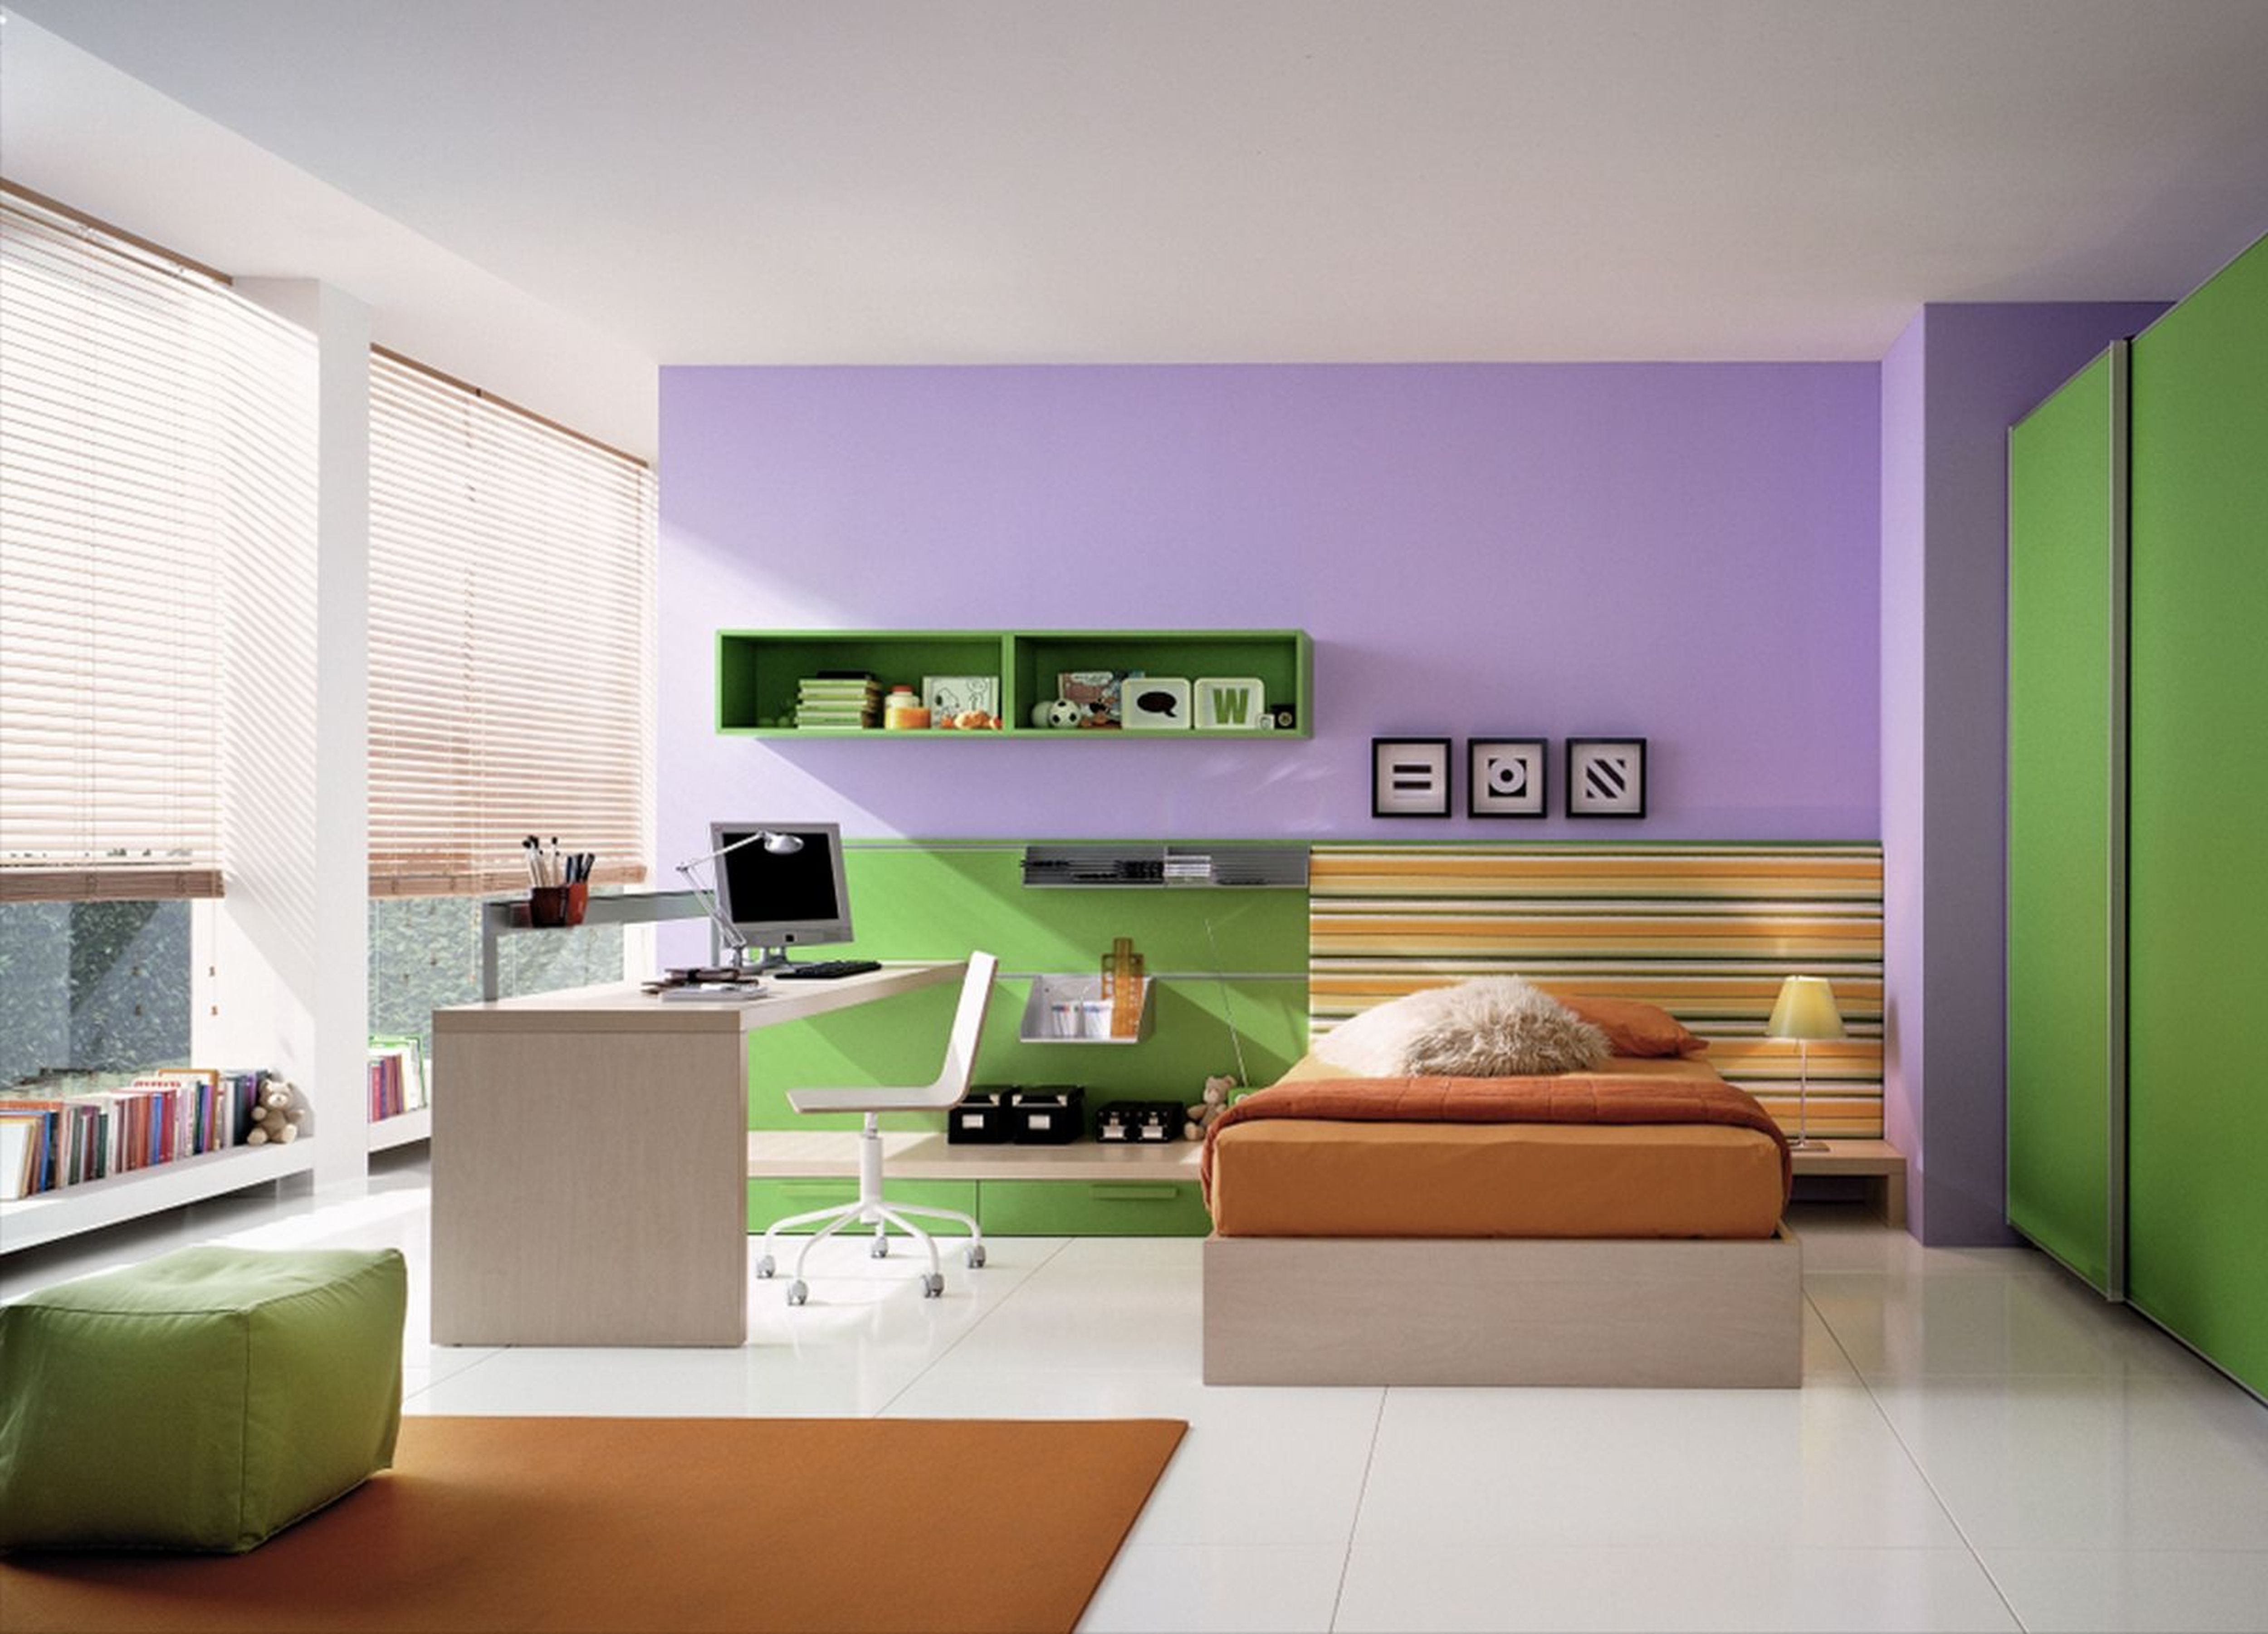 Design Bedroom Games Pleasing House And Bedroom Decorating Games  Home And House Decor Design Inspiration